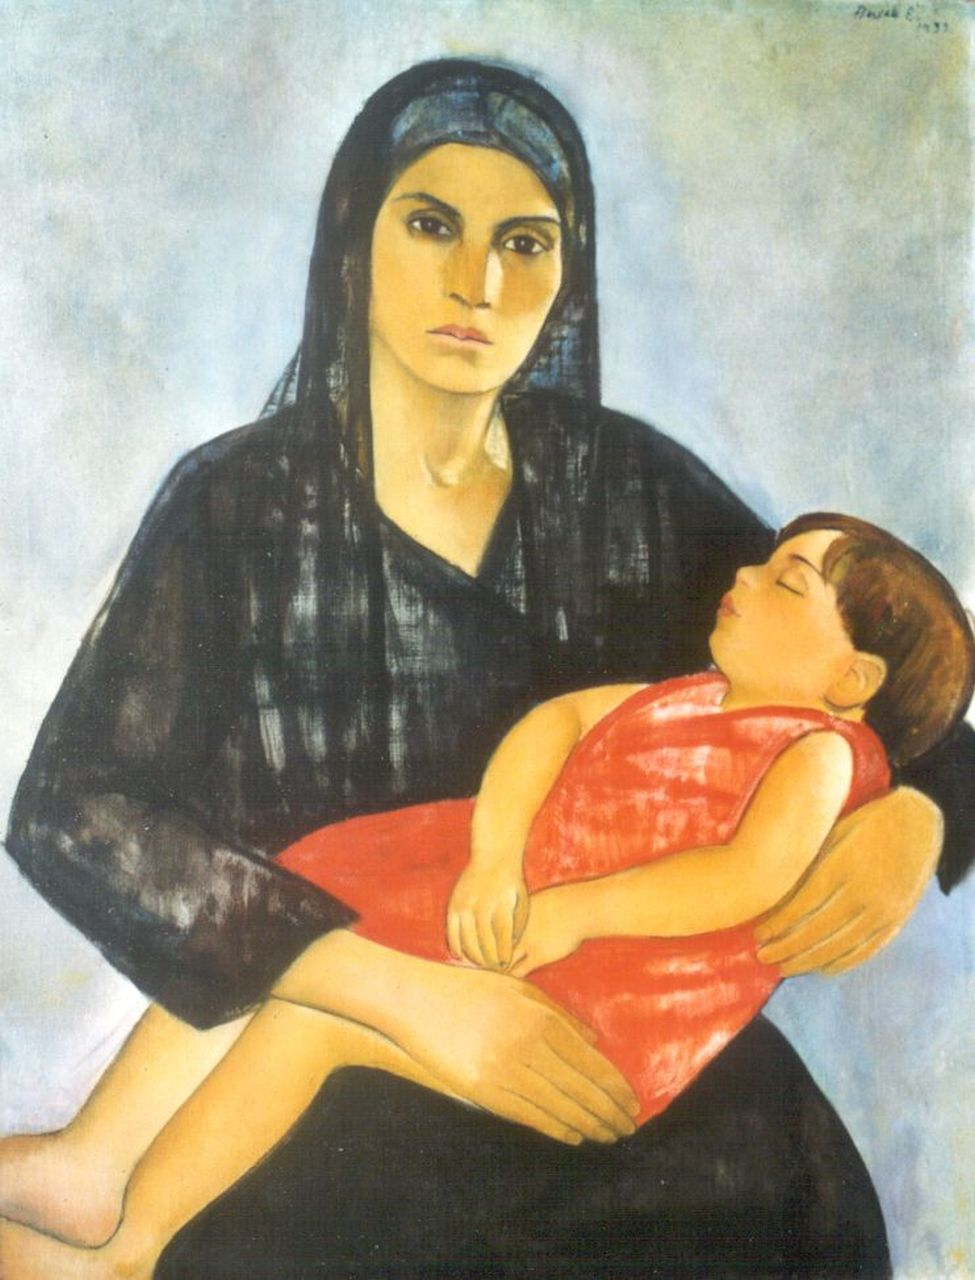 Basch E.  | Edith Basch, Mother with a sleeping child, oil on canvas 95.7 x 74.0 cm, signed u.r. and dated 1933